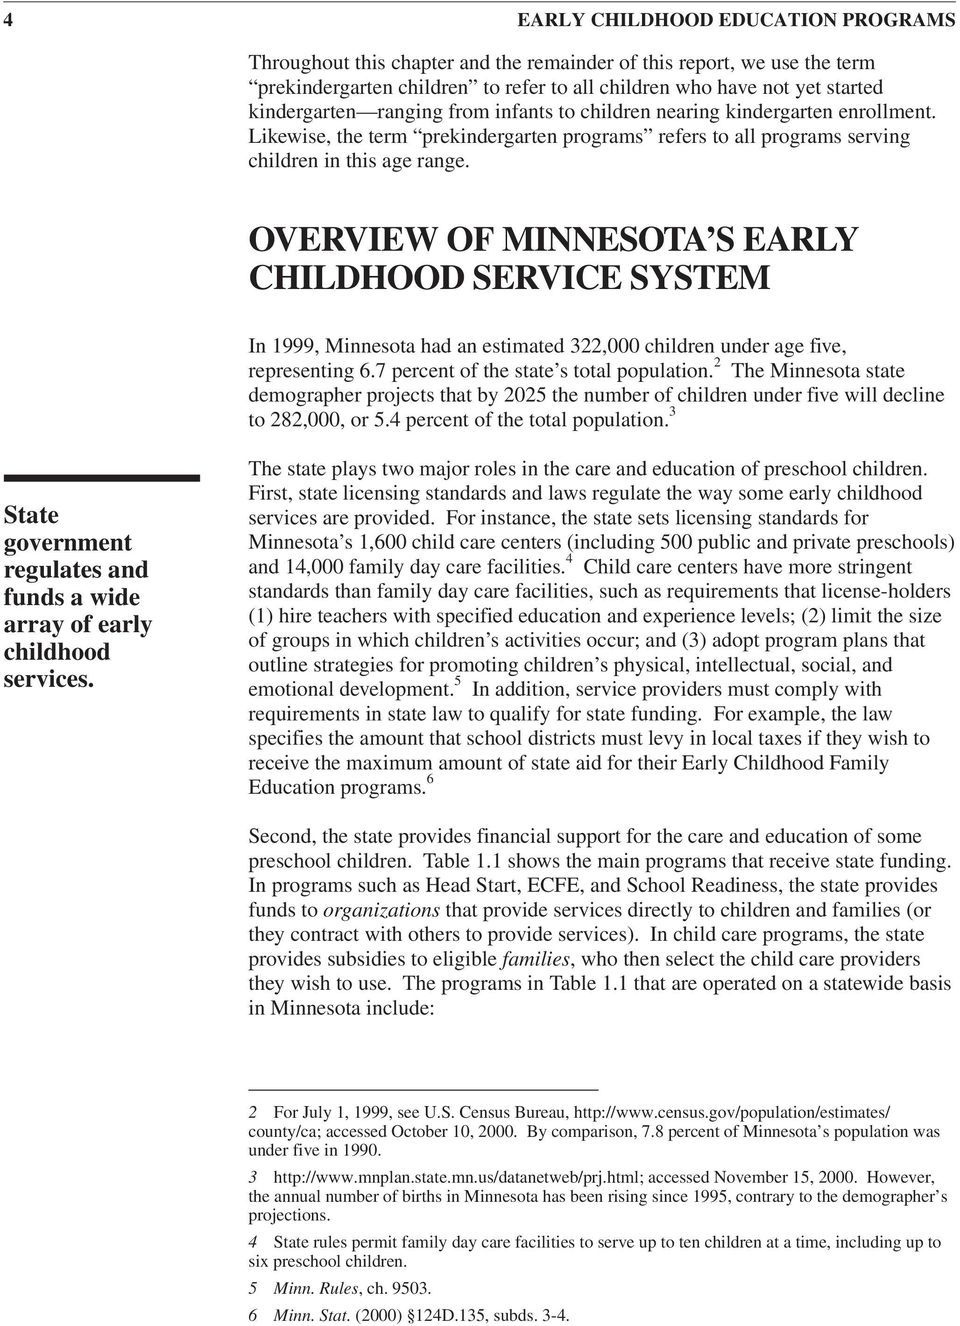 OVERVIEW OF MINNESOTA S EARLY CHILDHOOD SERVICE SYSTEM In 1999, Minnesota had an estimated 322,000 children under age five, representing 6.7 percent of the state s total population.